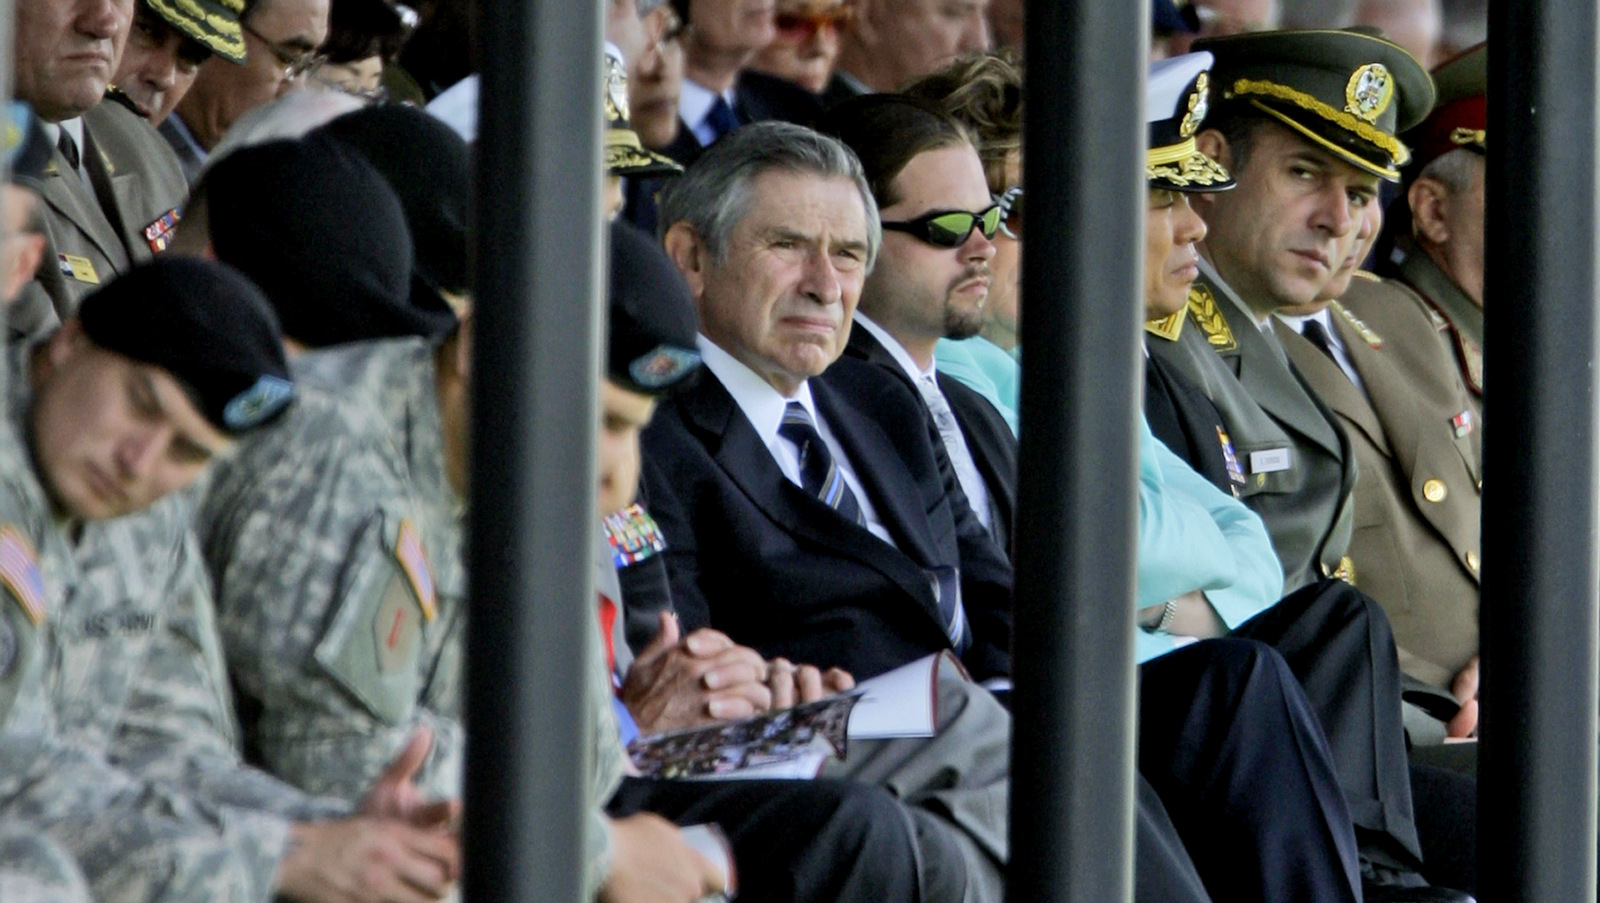 Former Deputy Defense Secretary, and former World Bank President Paul Wolfowitz, center, attends a farewell ceremony for outgoing Joint Chiefs Chairman Gen. Peter Pace. (AP/Pablo Martinez Monsivais)